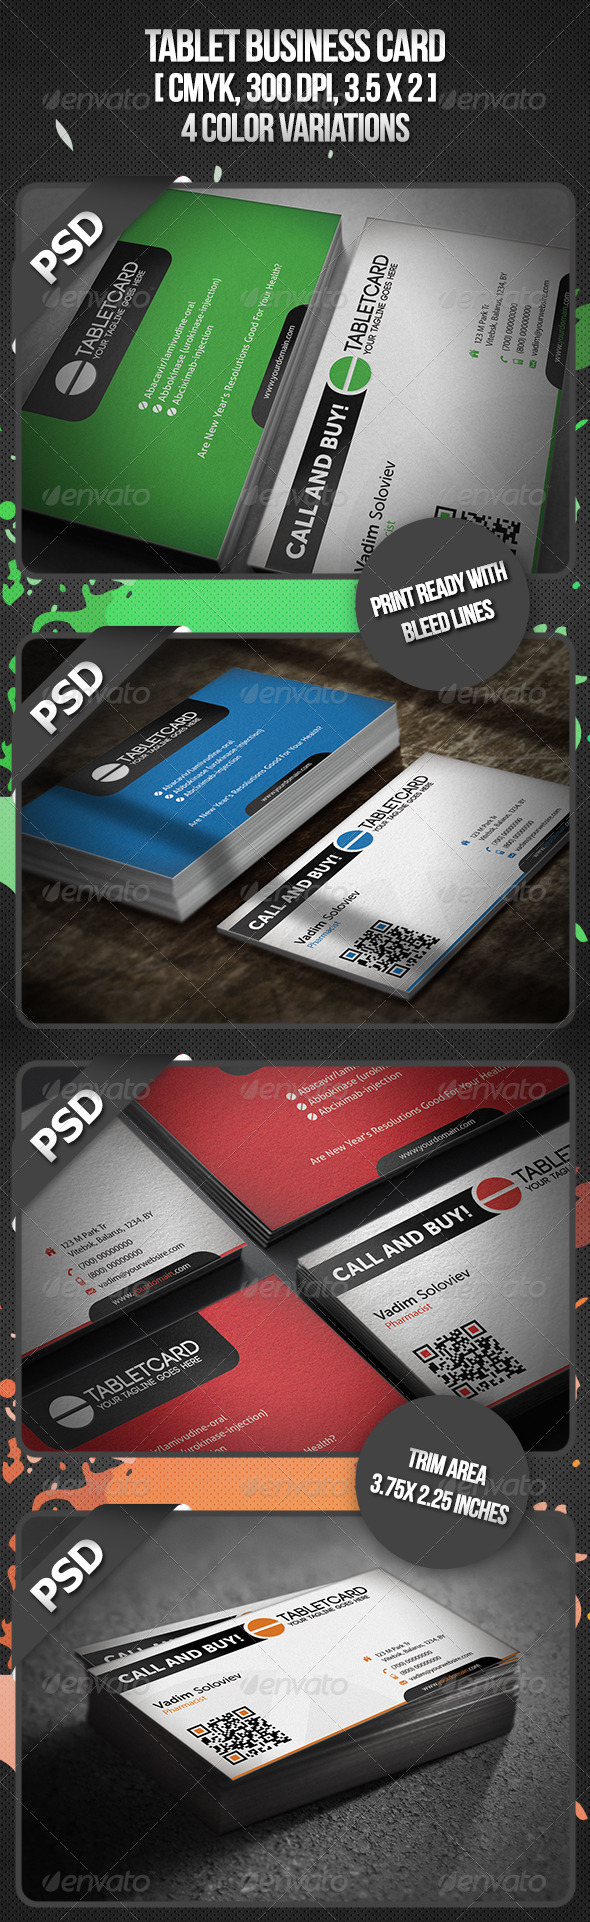 GraphicRiver Tablet Business Card 3343286